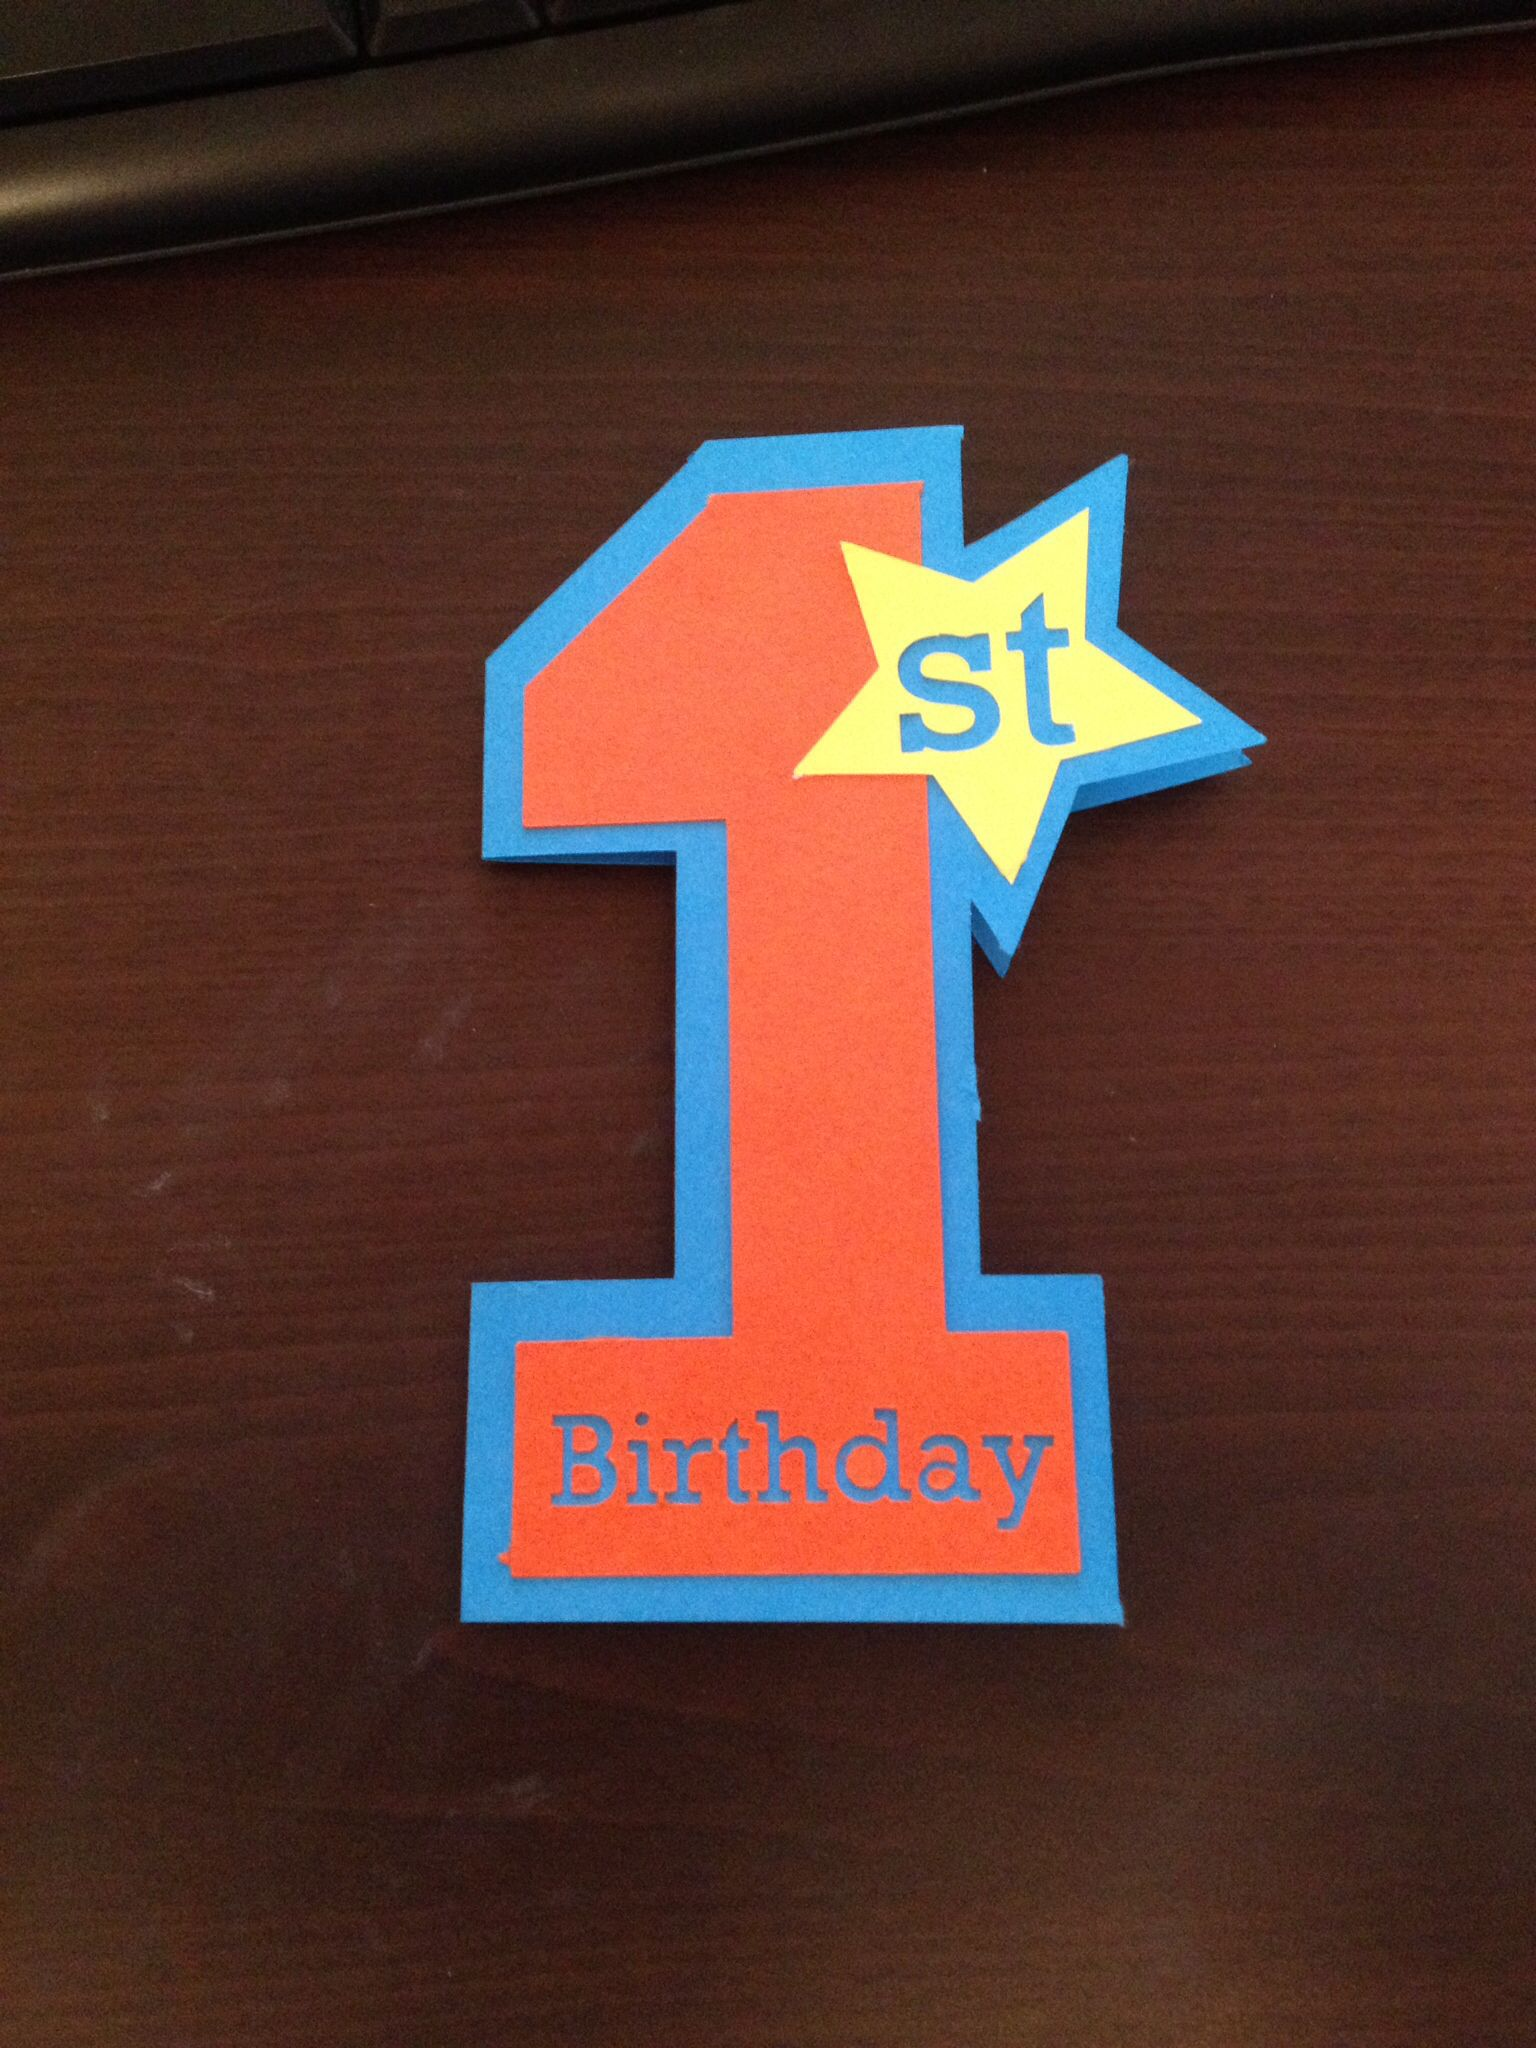 First birthday card simple 1st cameo cut out blue orange yellow for first birthday card simple 1st cameo cut out blue orange yellow for baby boy bookmarktalkfo Choice Image